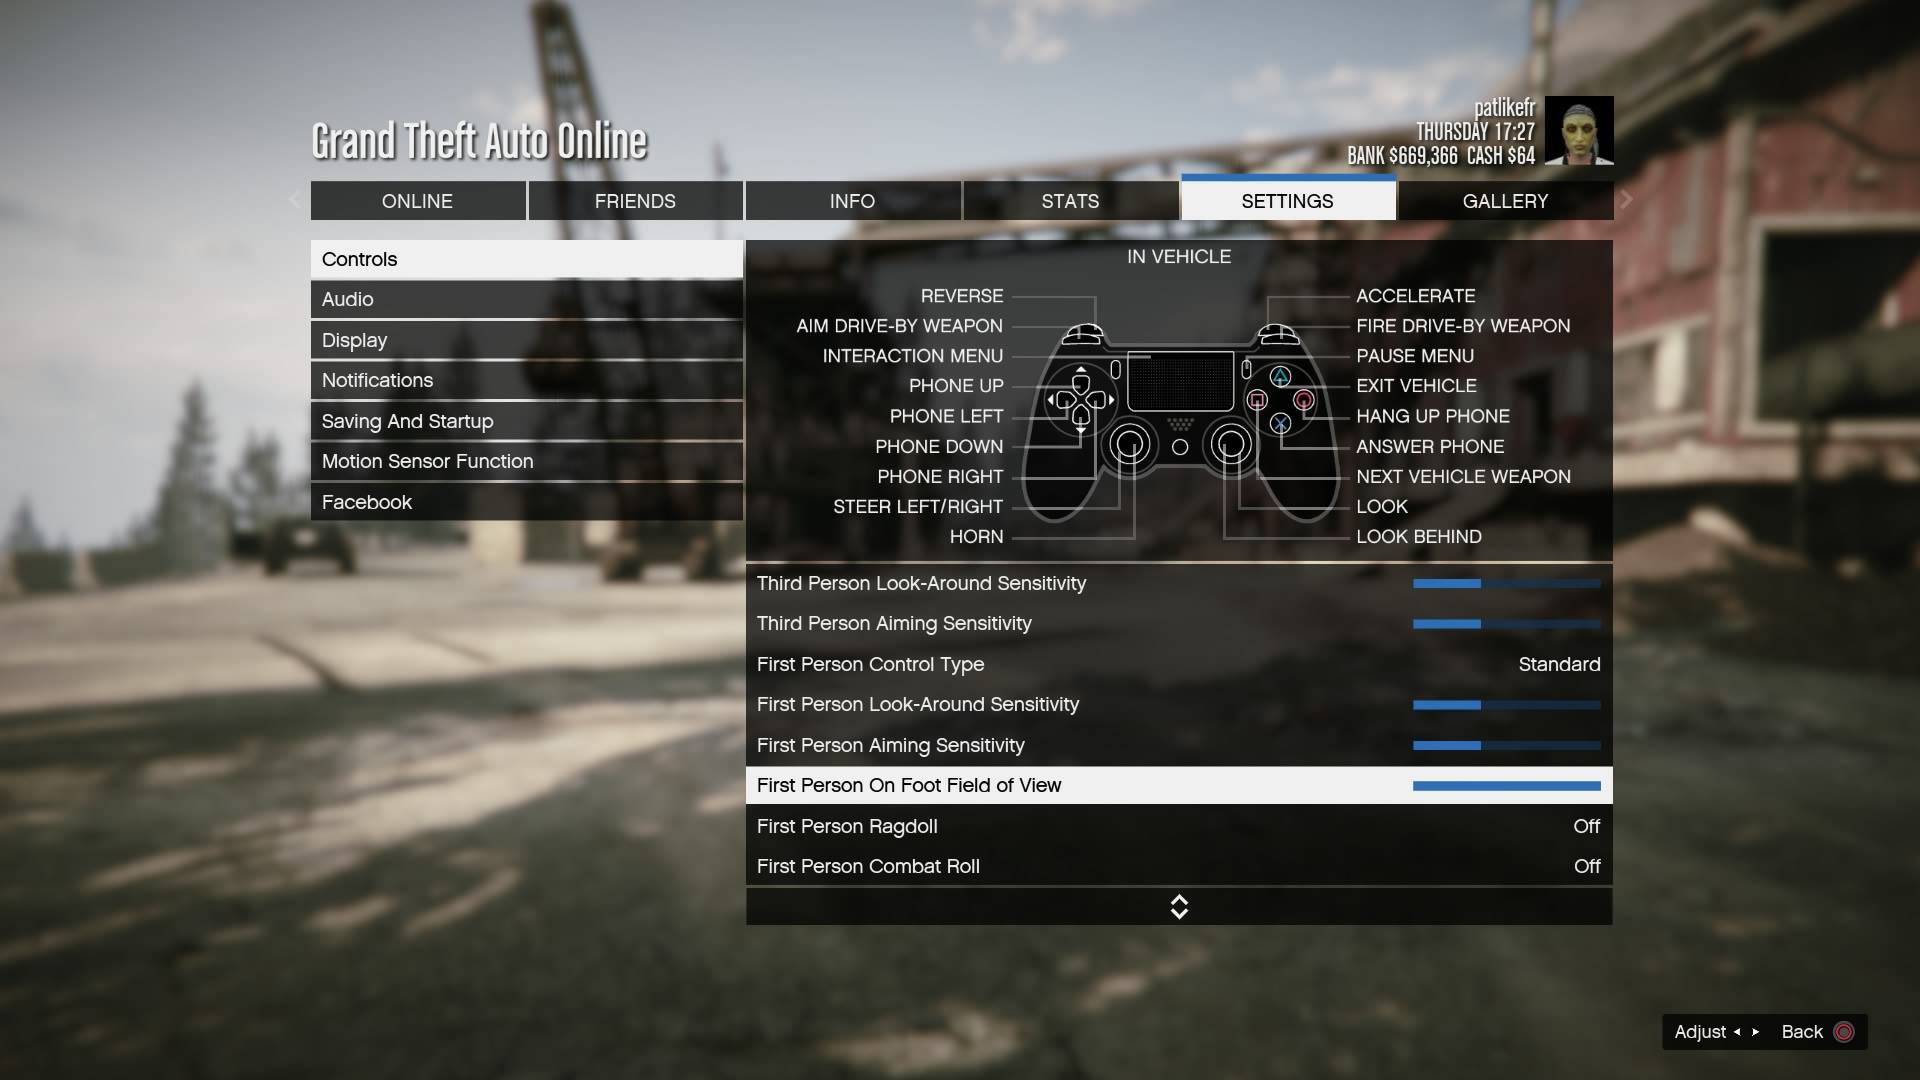 GTA 5 guide: how to configure first-person views on PS4 and